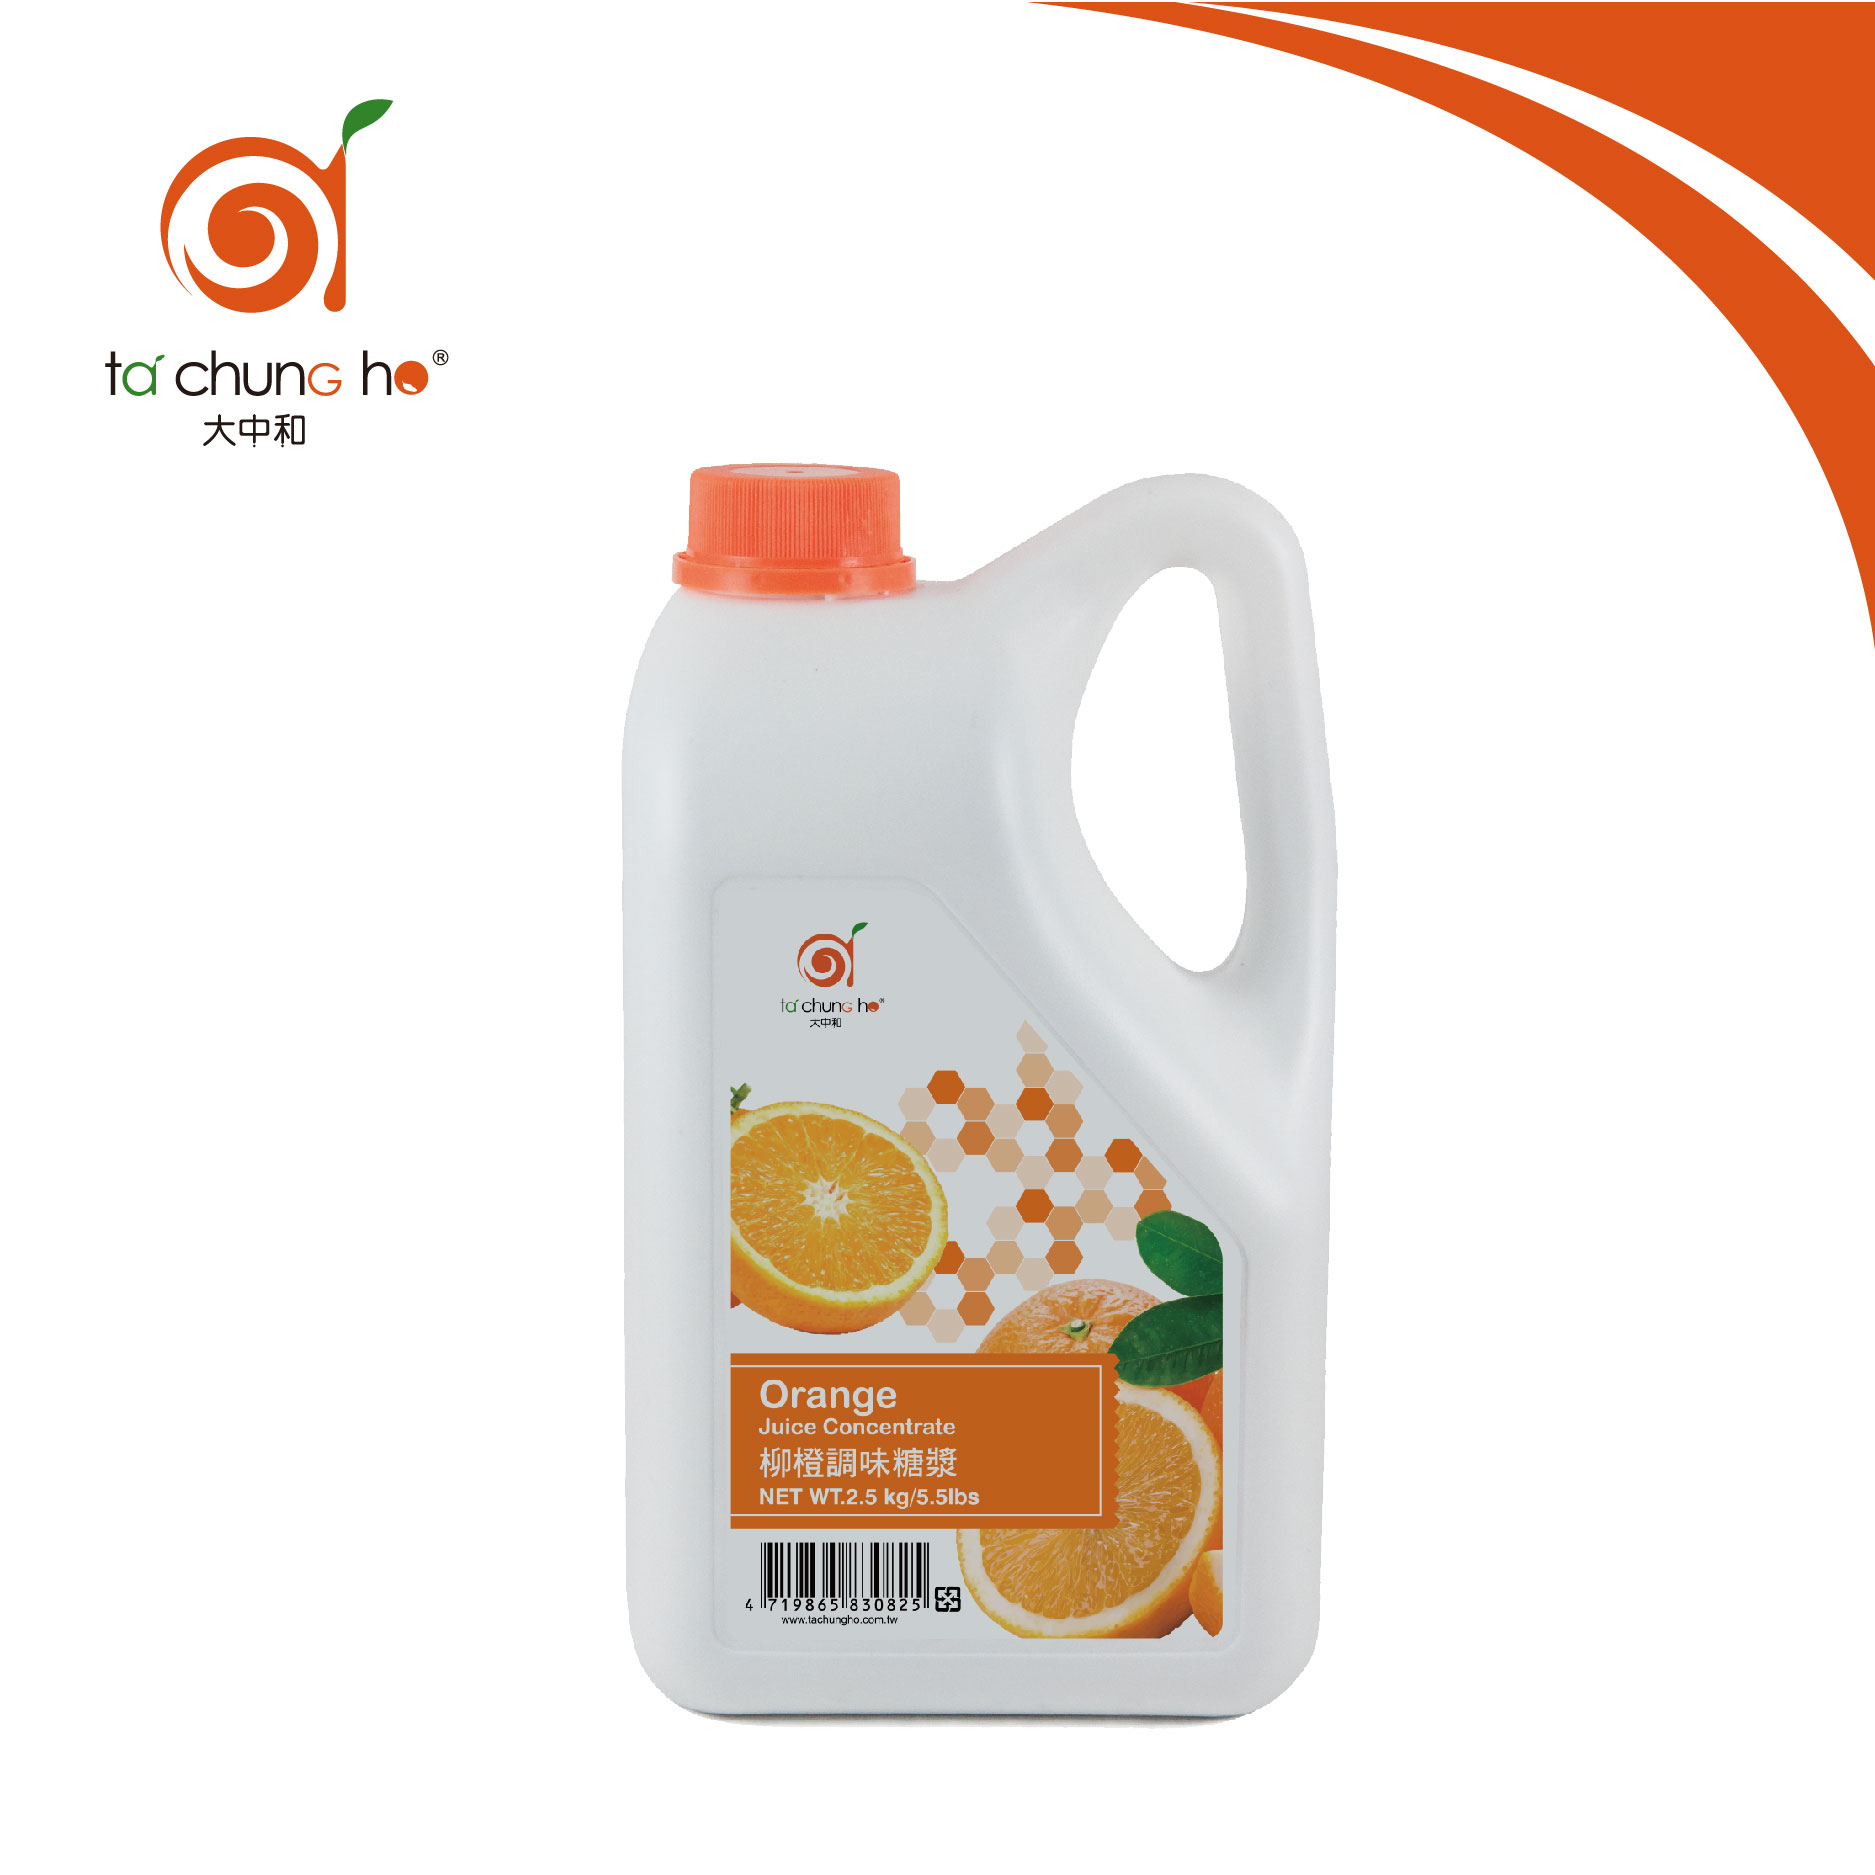 2.5kg TachunGhO Orange taiwan Concentrate Juice